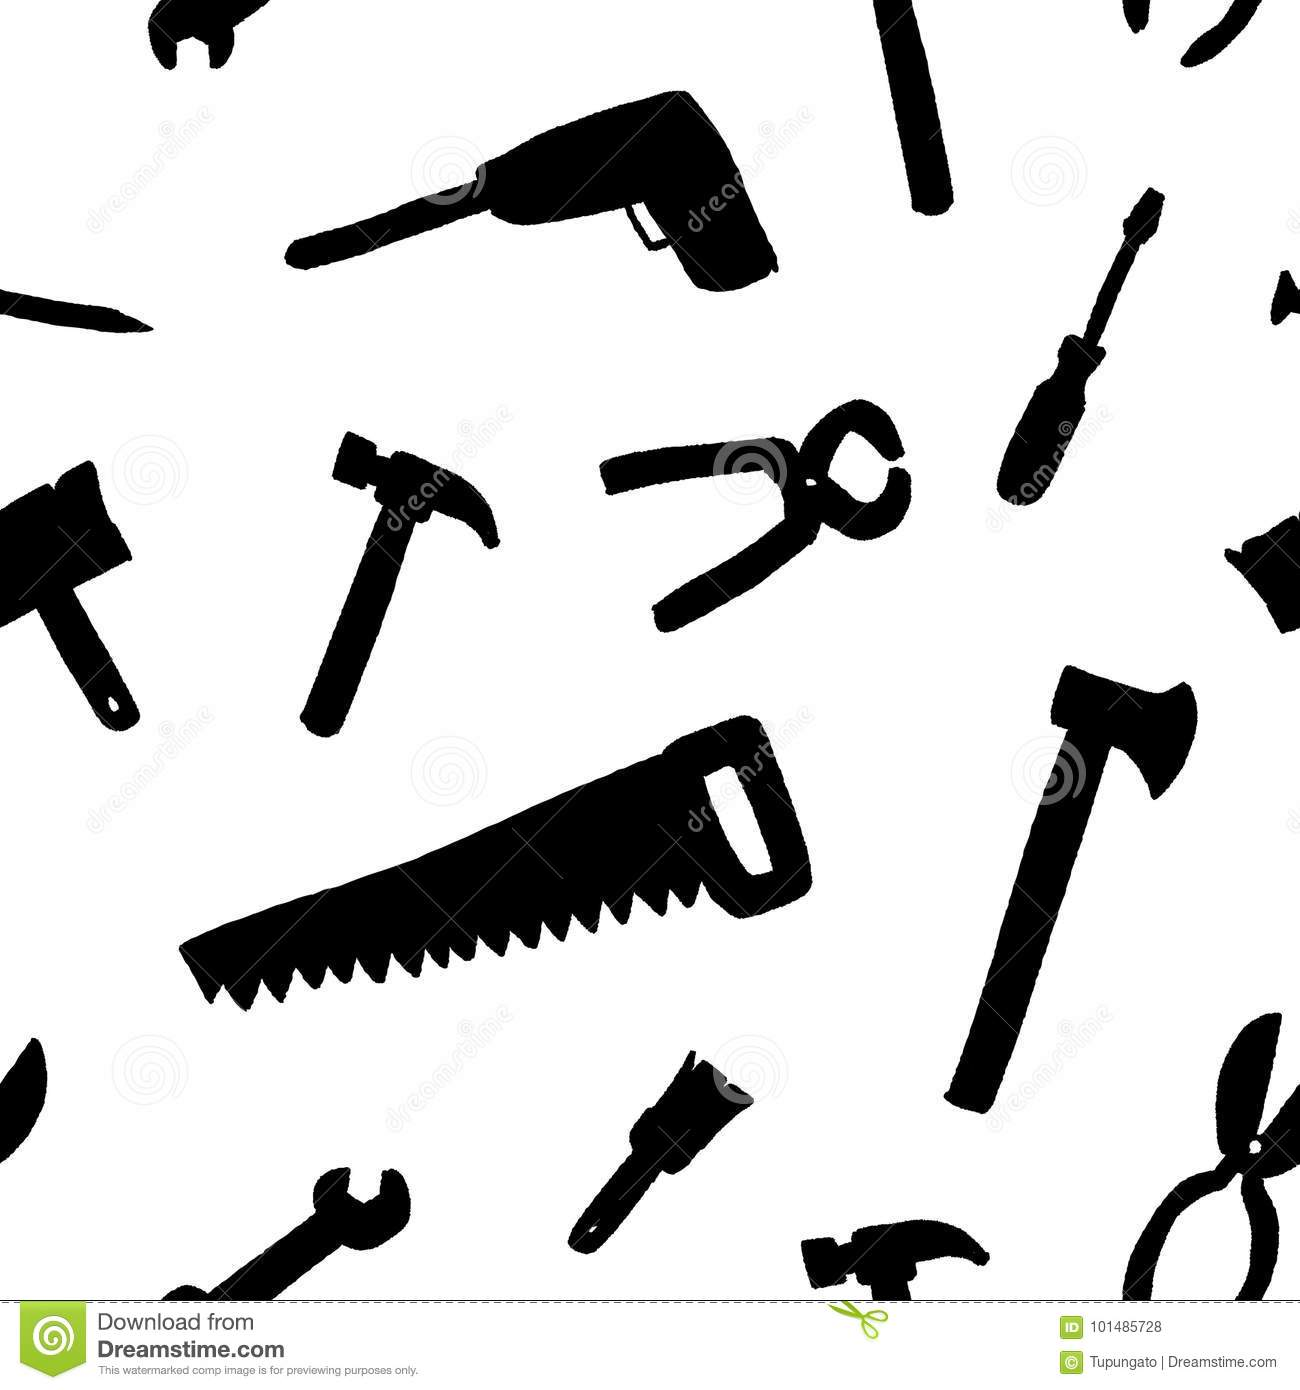 Tools Seamless Background Stock Vector Illustration Of Drawn